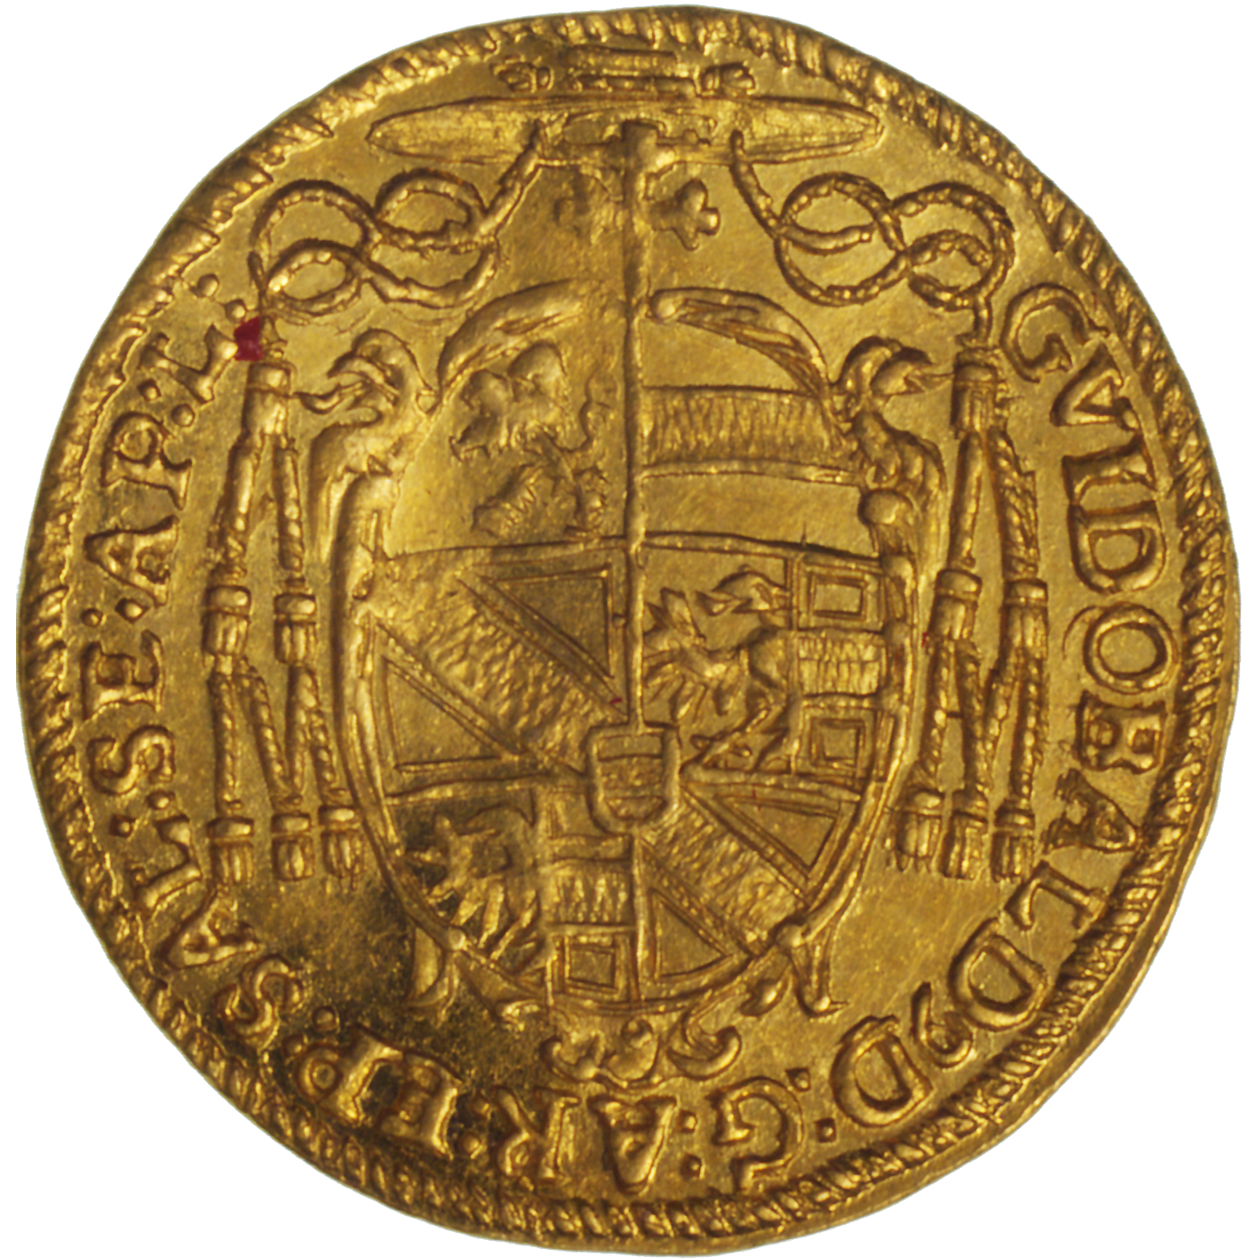 Holy Roman Empire, Archbishopric Salzburg, Guidobald of Thun and Hohenstein, Ducat 1655 (reverse)